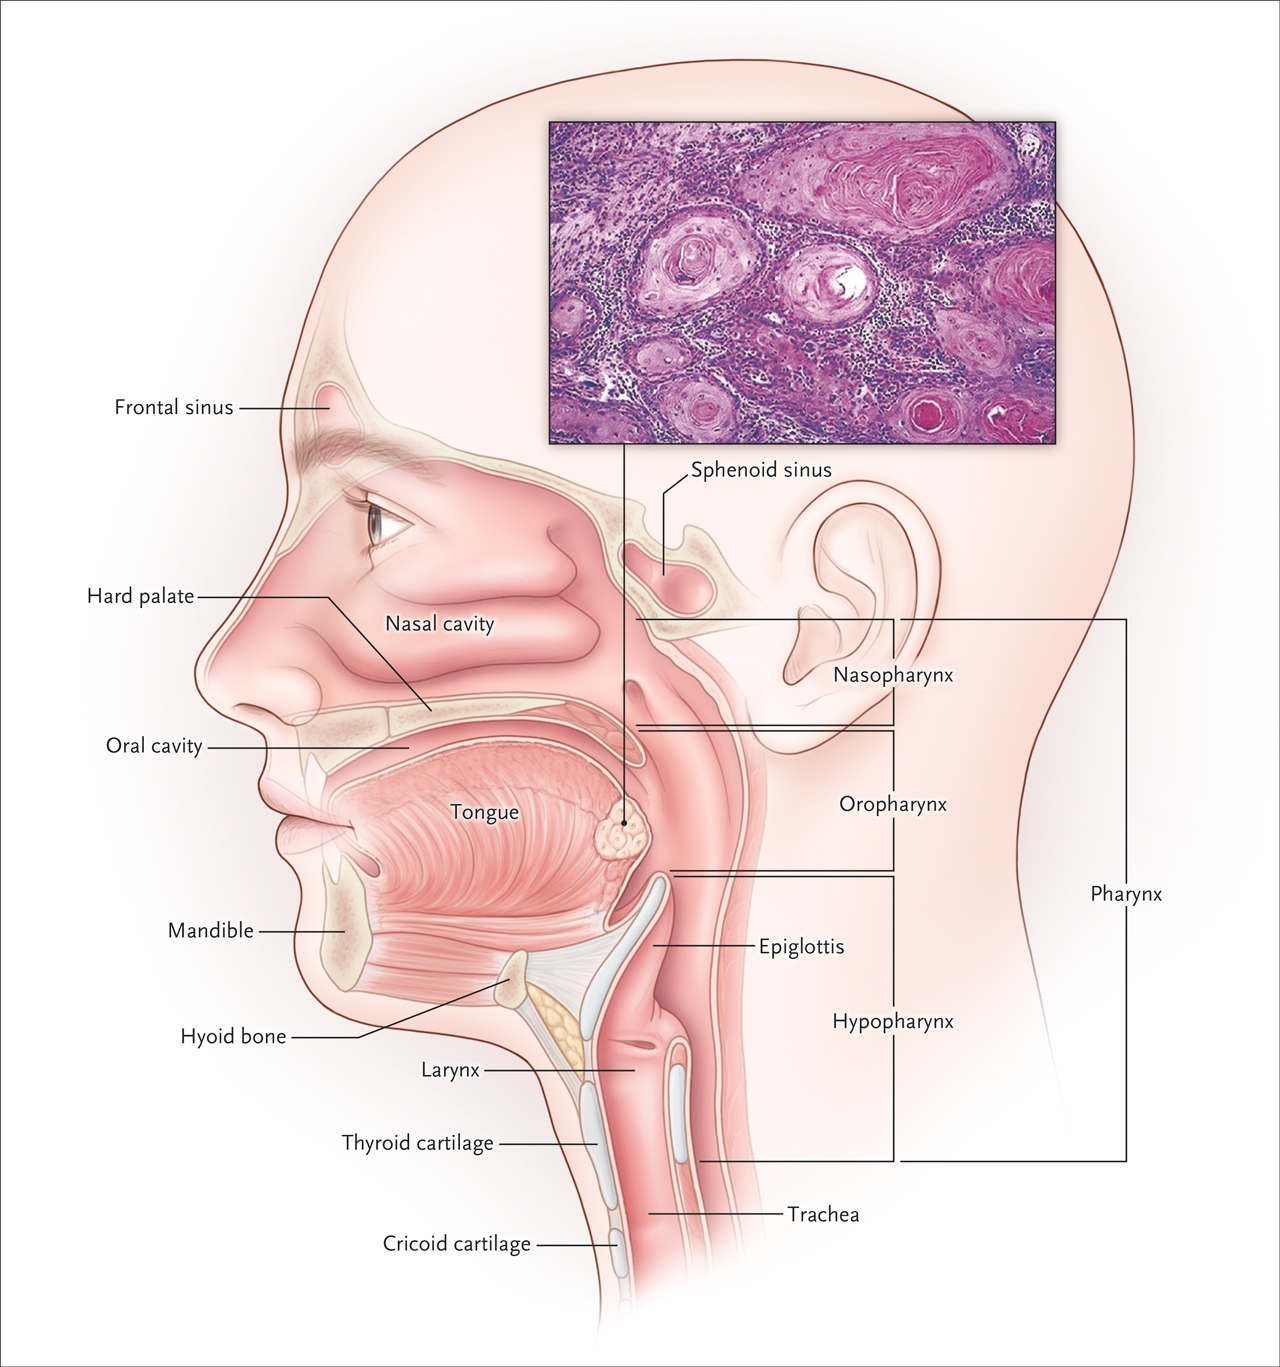 Incidence of hpv related head and neck cancer - Hpv head and neck cancer statistics